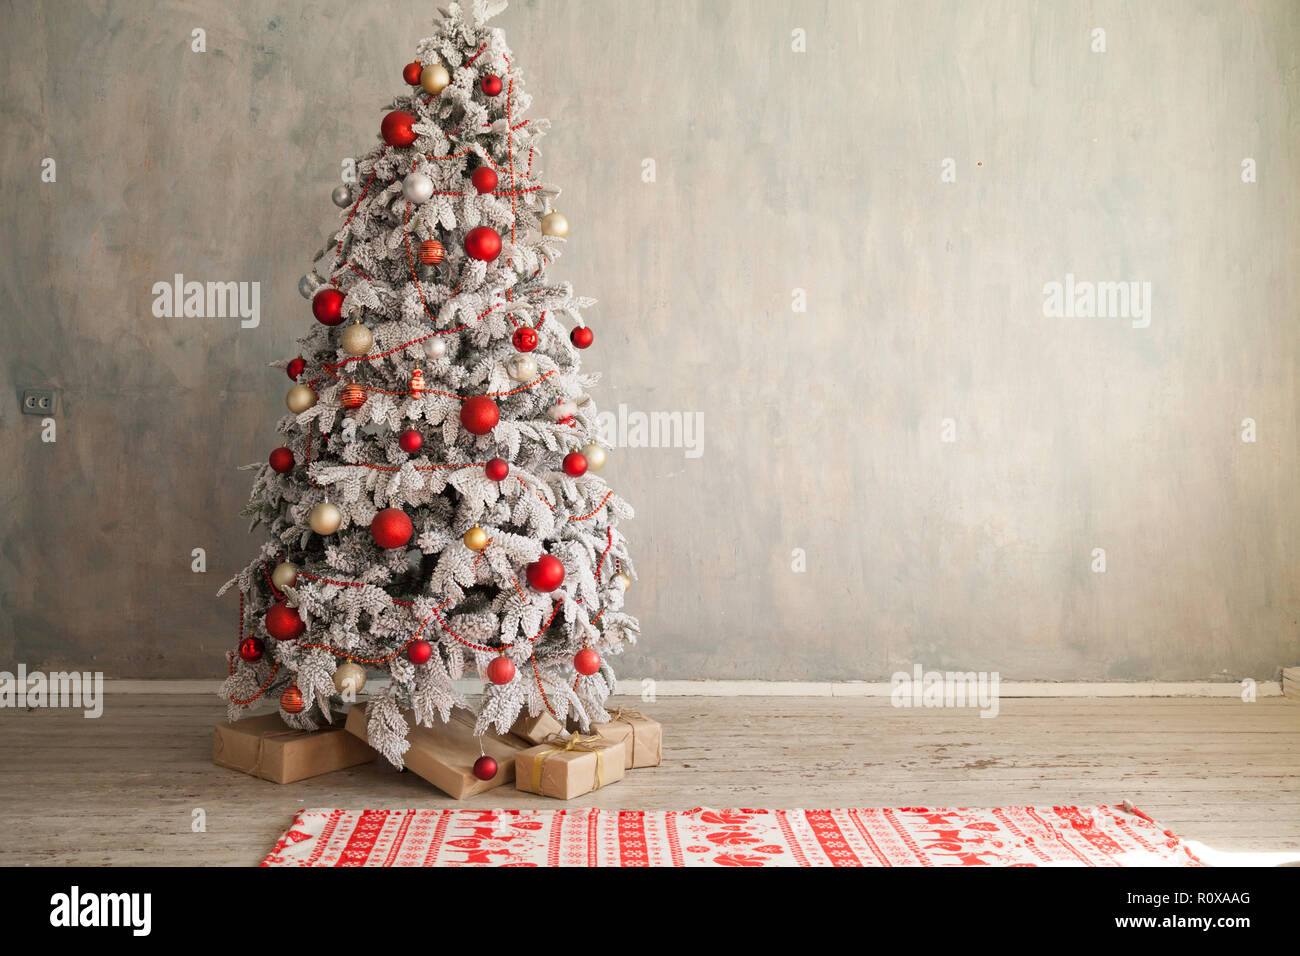 White Christmas Tree With Red Toys New Year Winter Gifts Decor Stock Photo Alamy